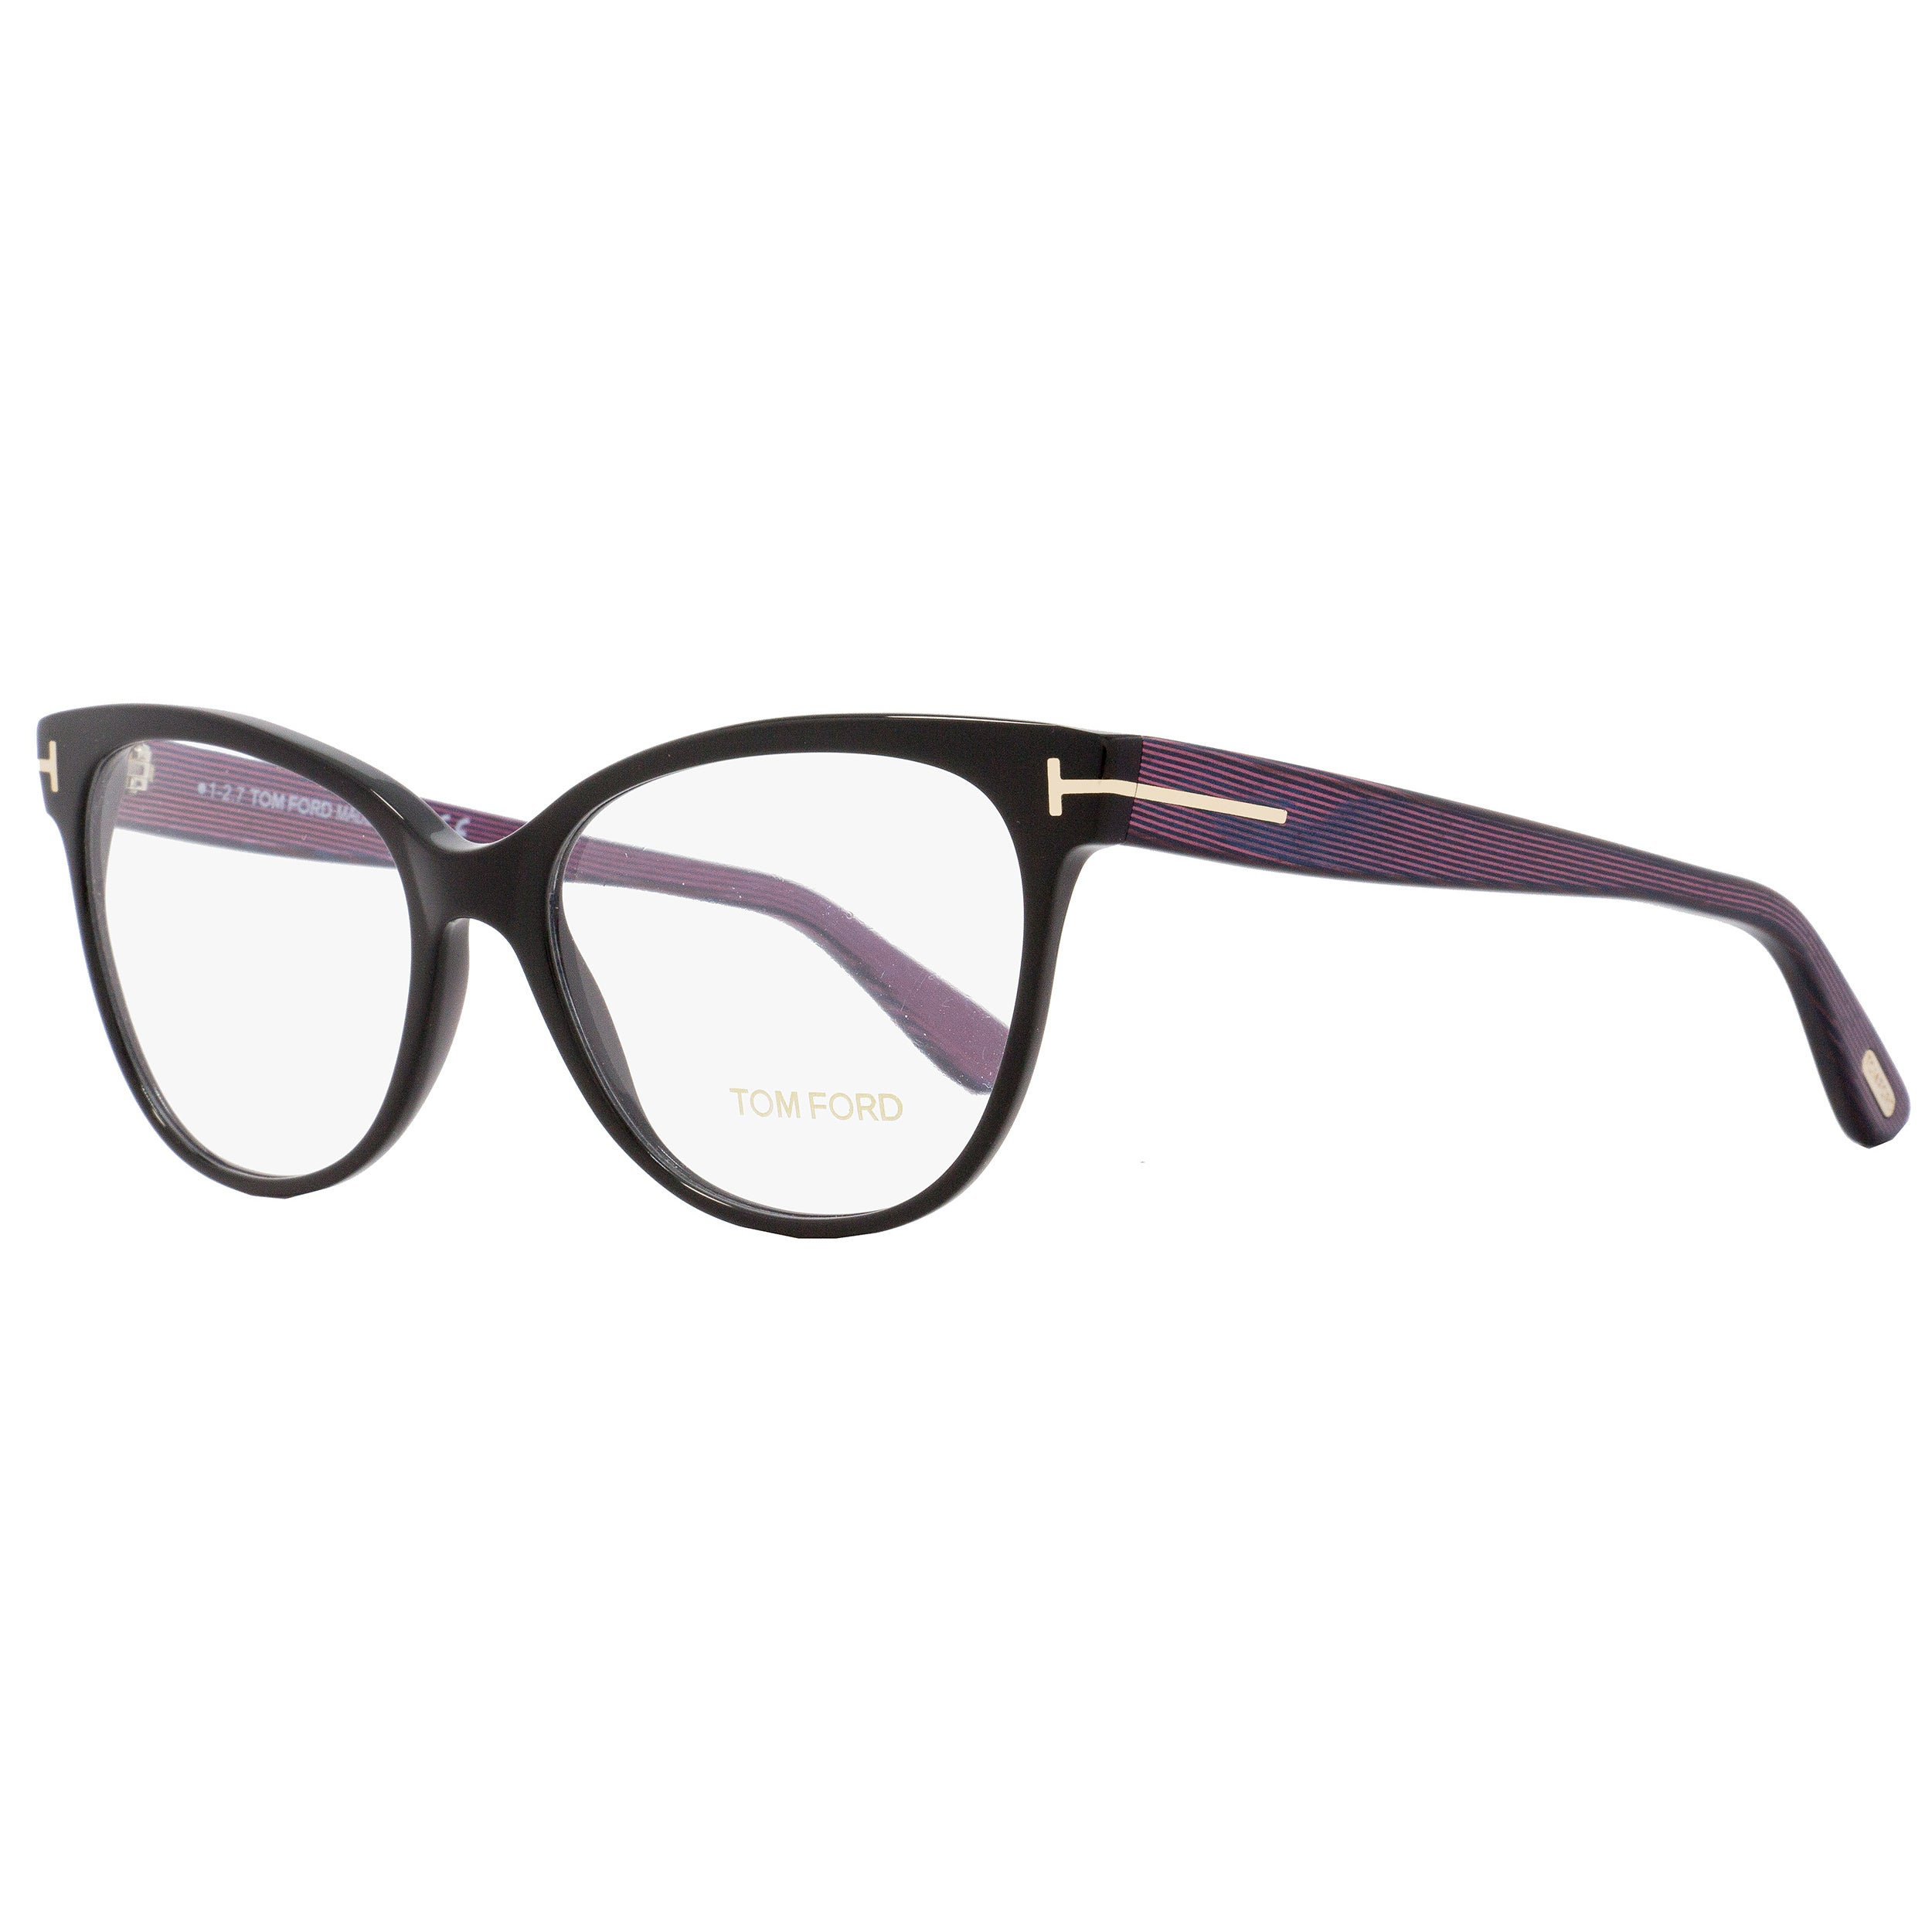 2ed8a4c11acd Buy Tom Ford Optical Frames Online at Overstock